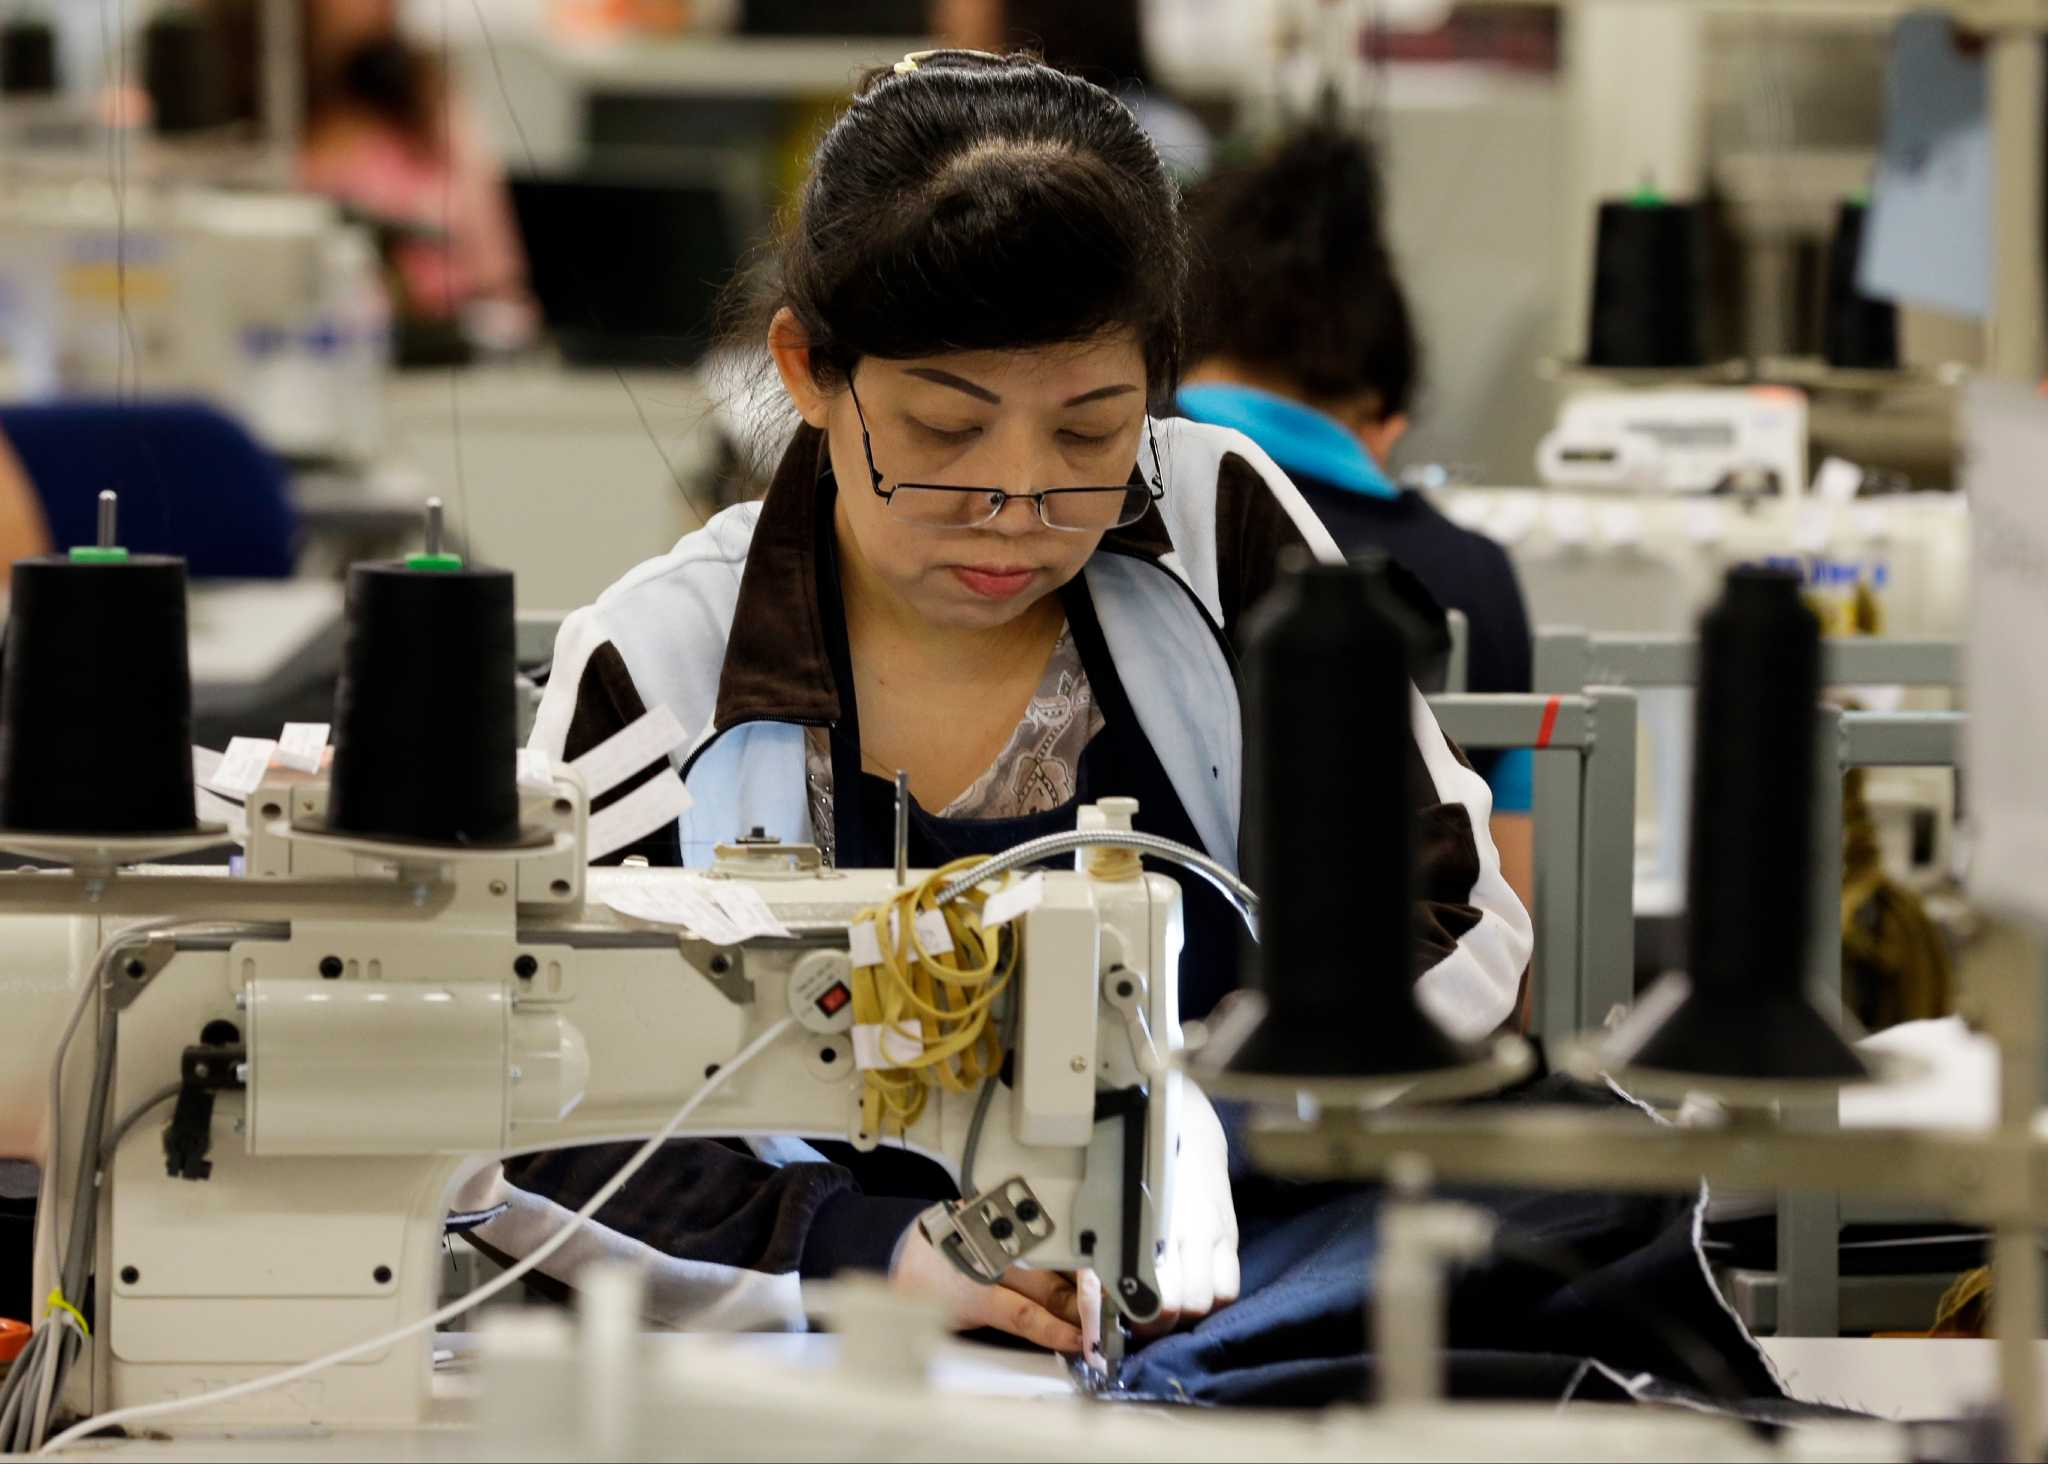 U.S. productivity down in spring, while labor costs rise - Houston Chronicle